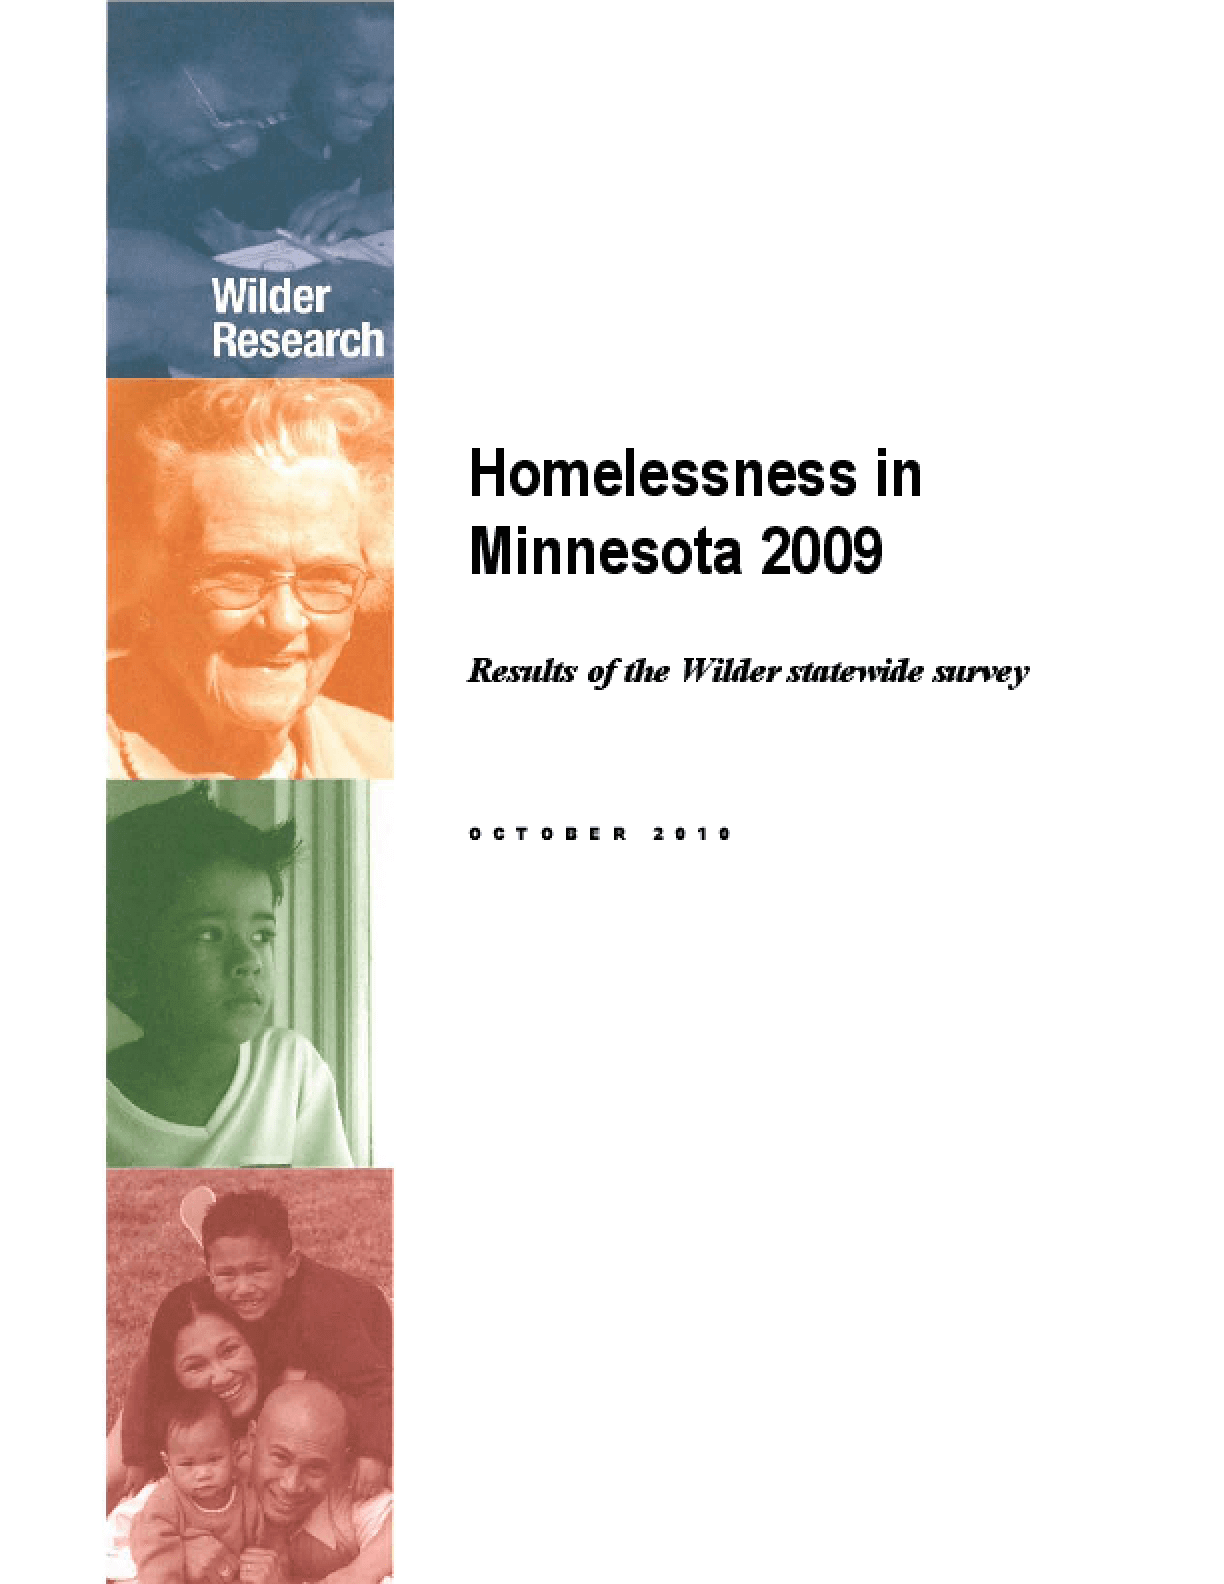 Homelessness in Minnesota 2009